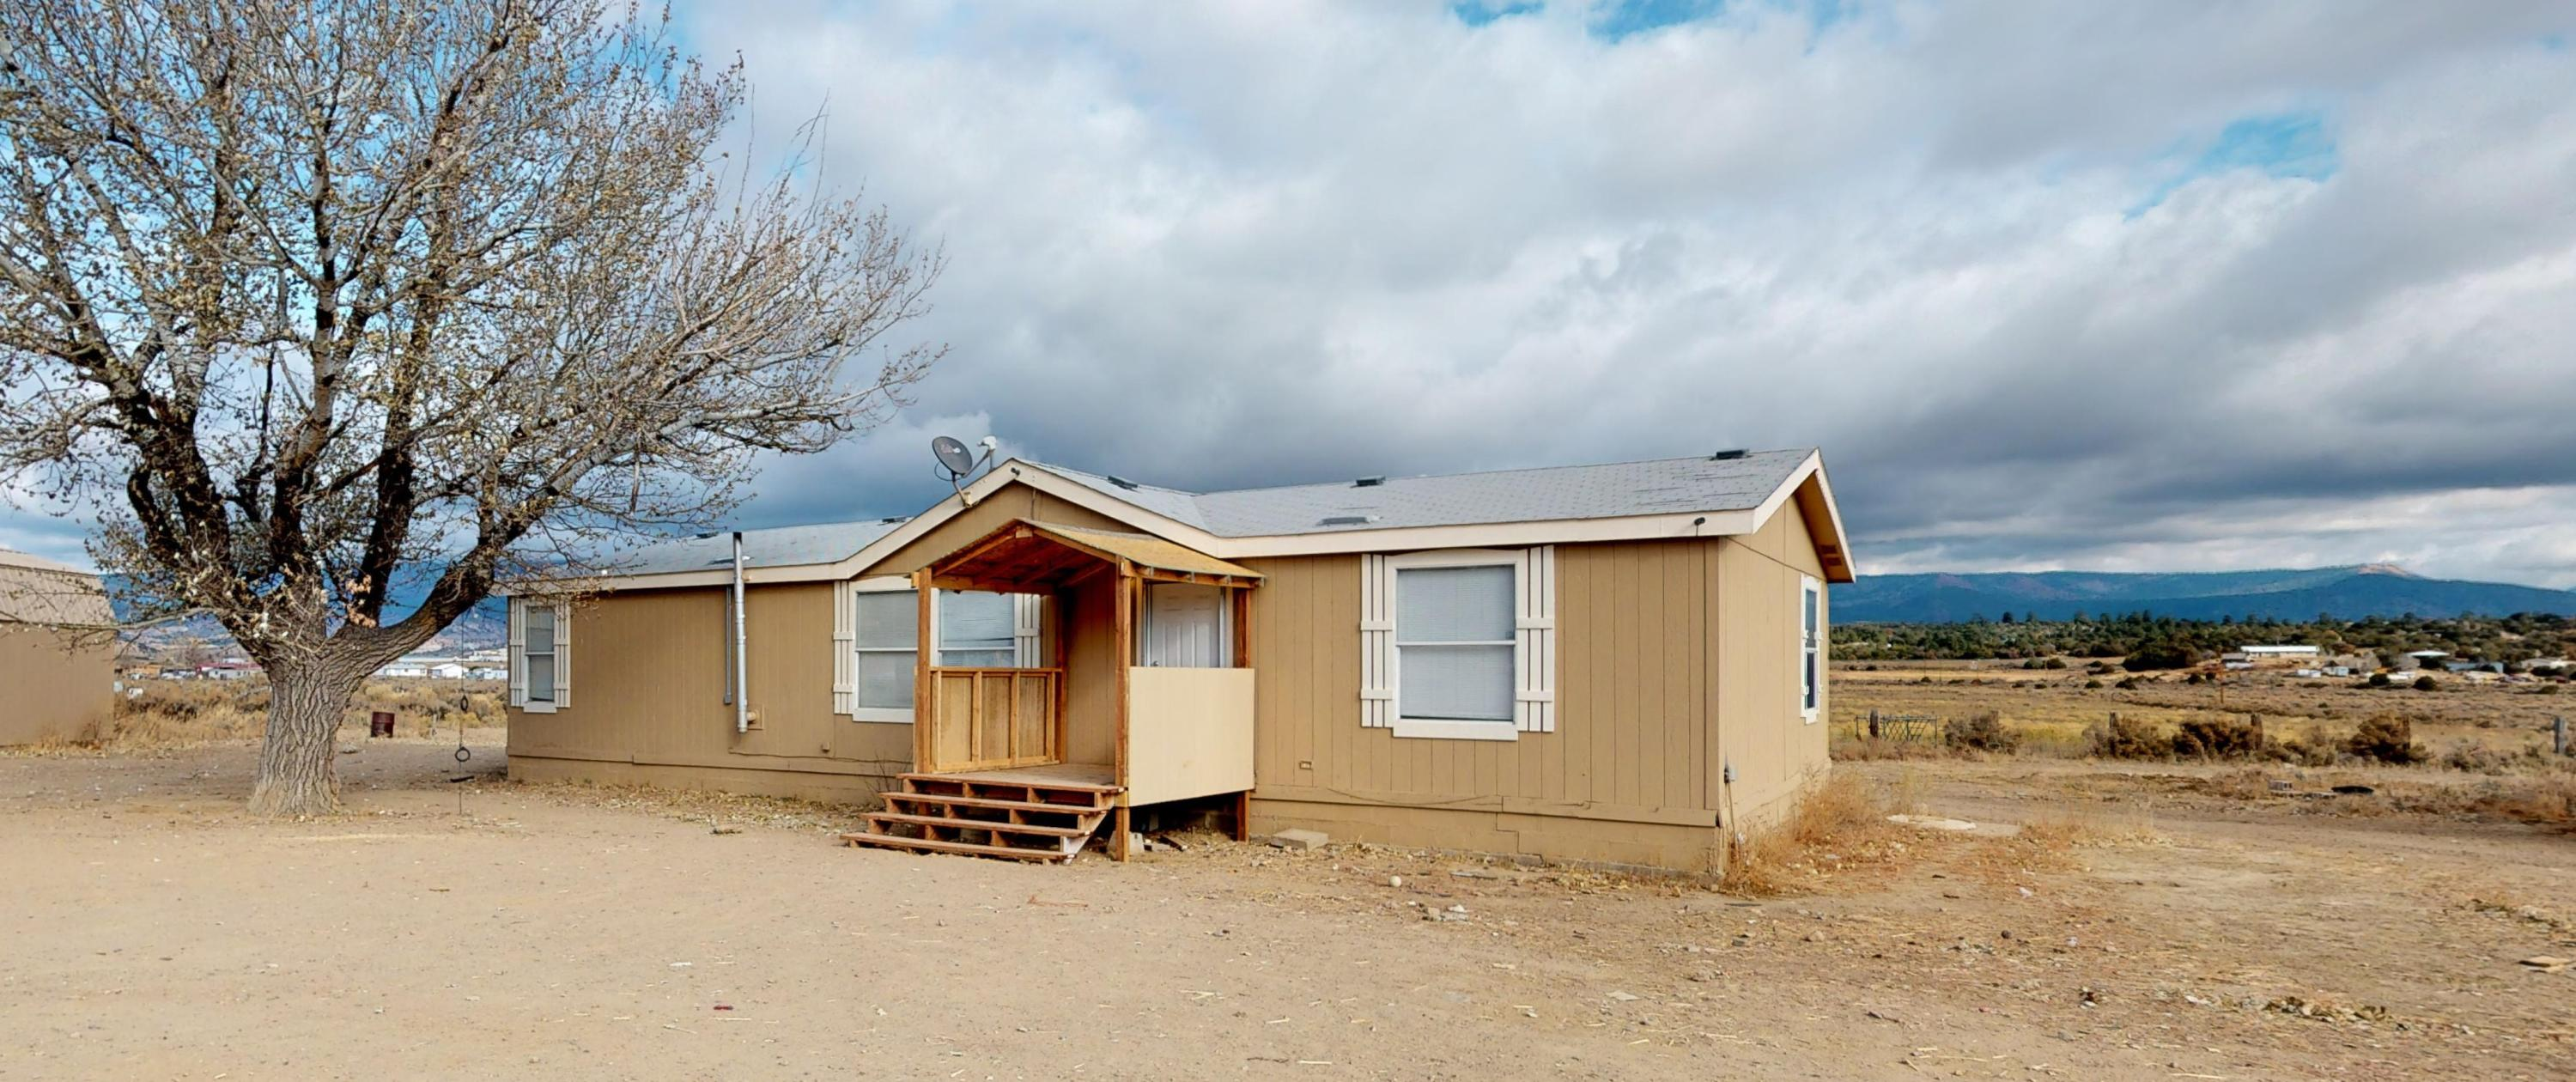 136 STATE HIGHWAY 197 Property Photo - Cuba, NM real estate listing